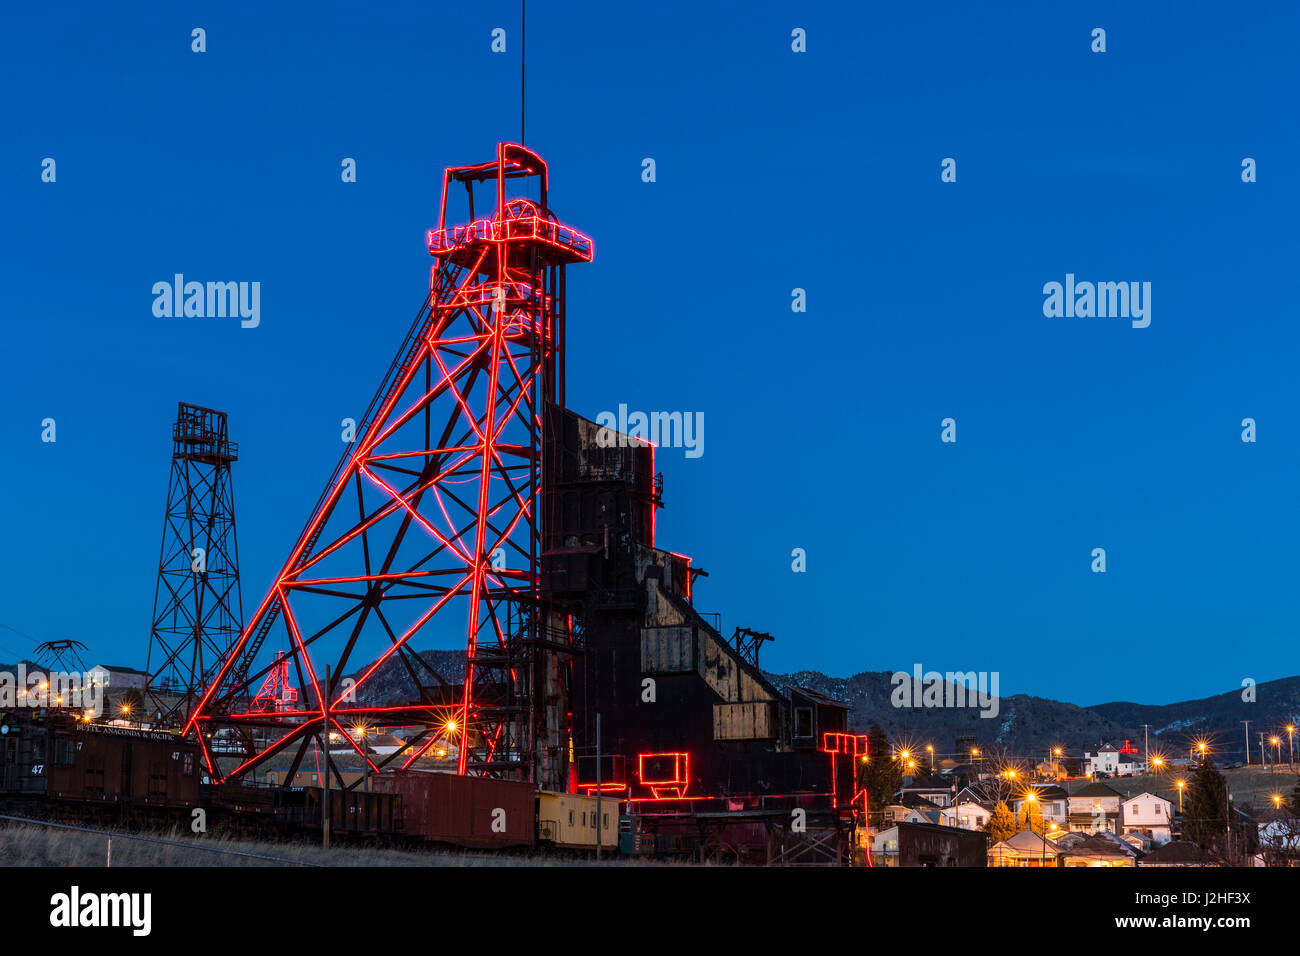 Old mining gallows headframes in Butte, Montana, USA - Stock Image